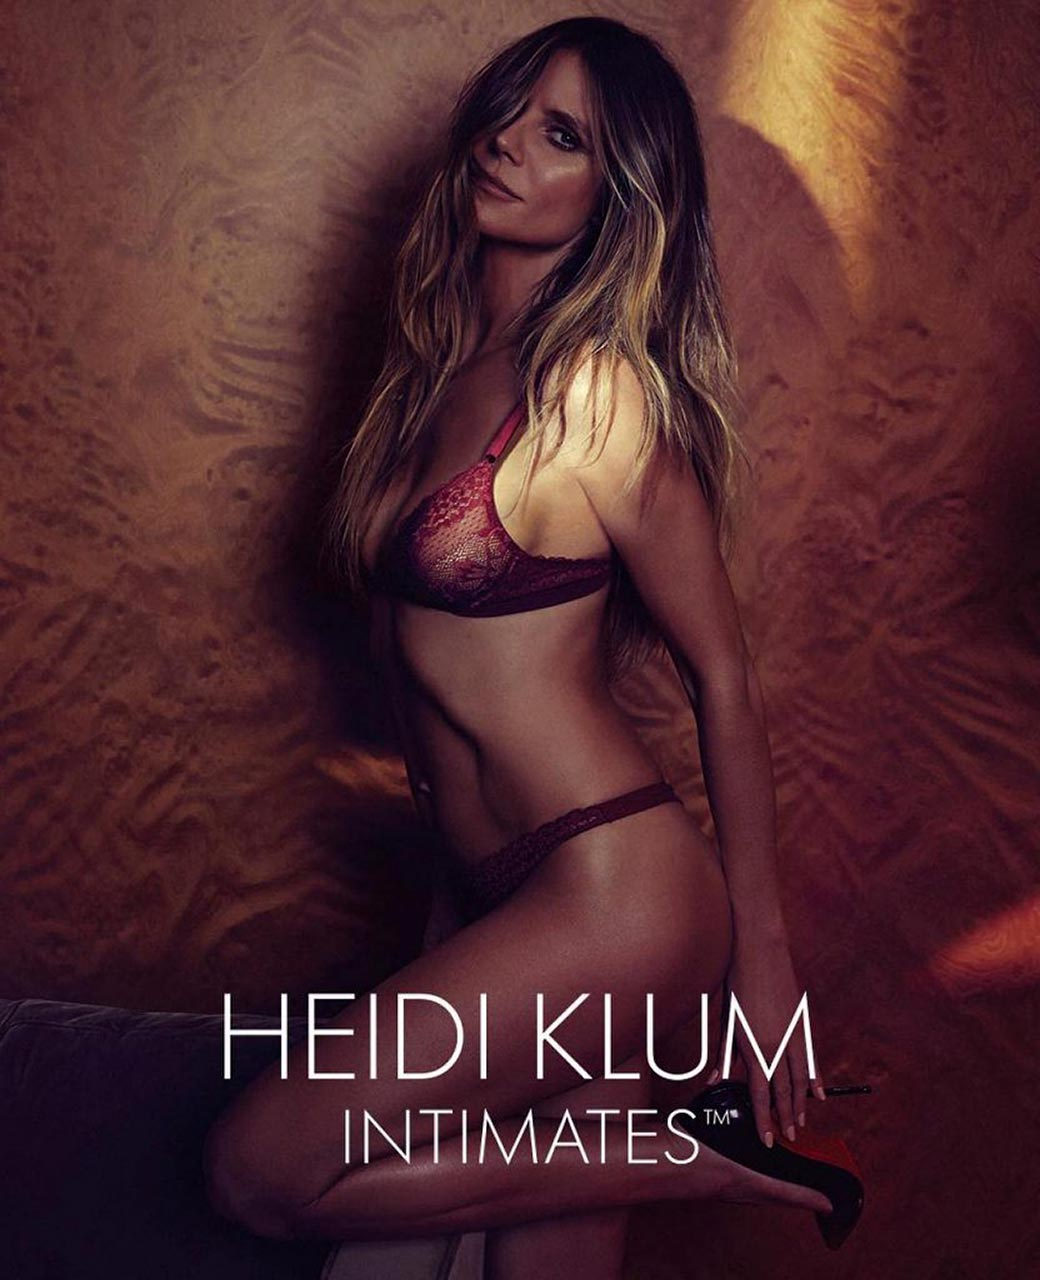 Heidi klum naked hot are definitely